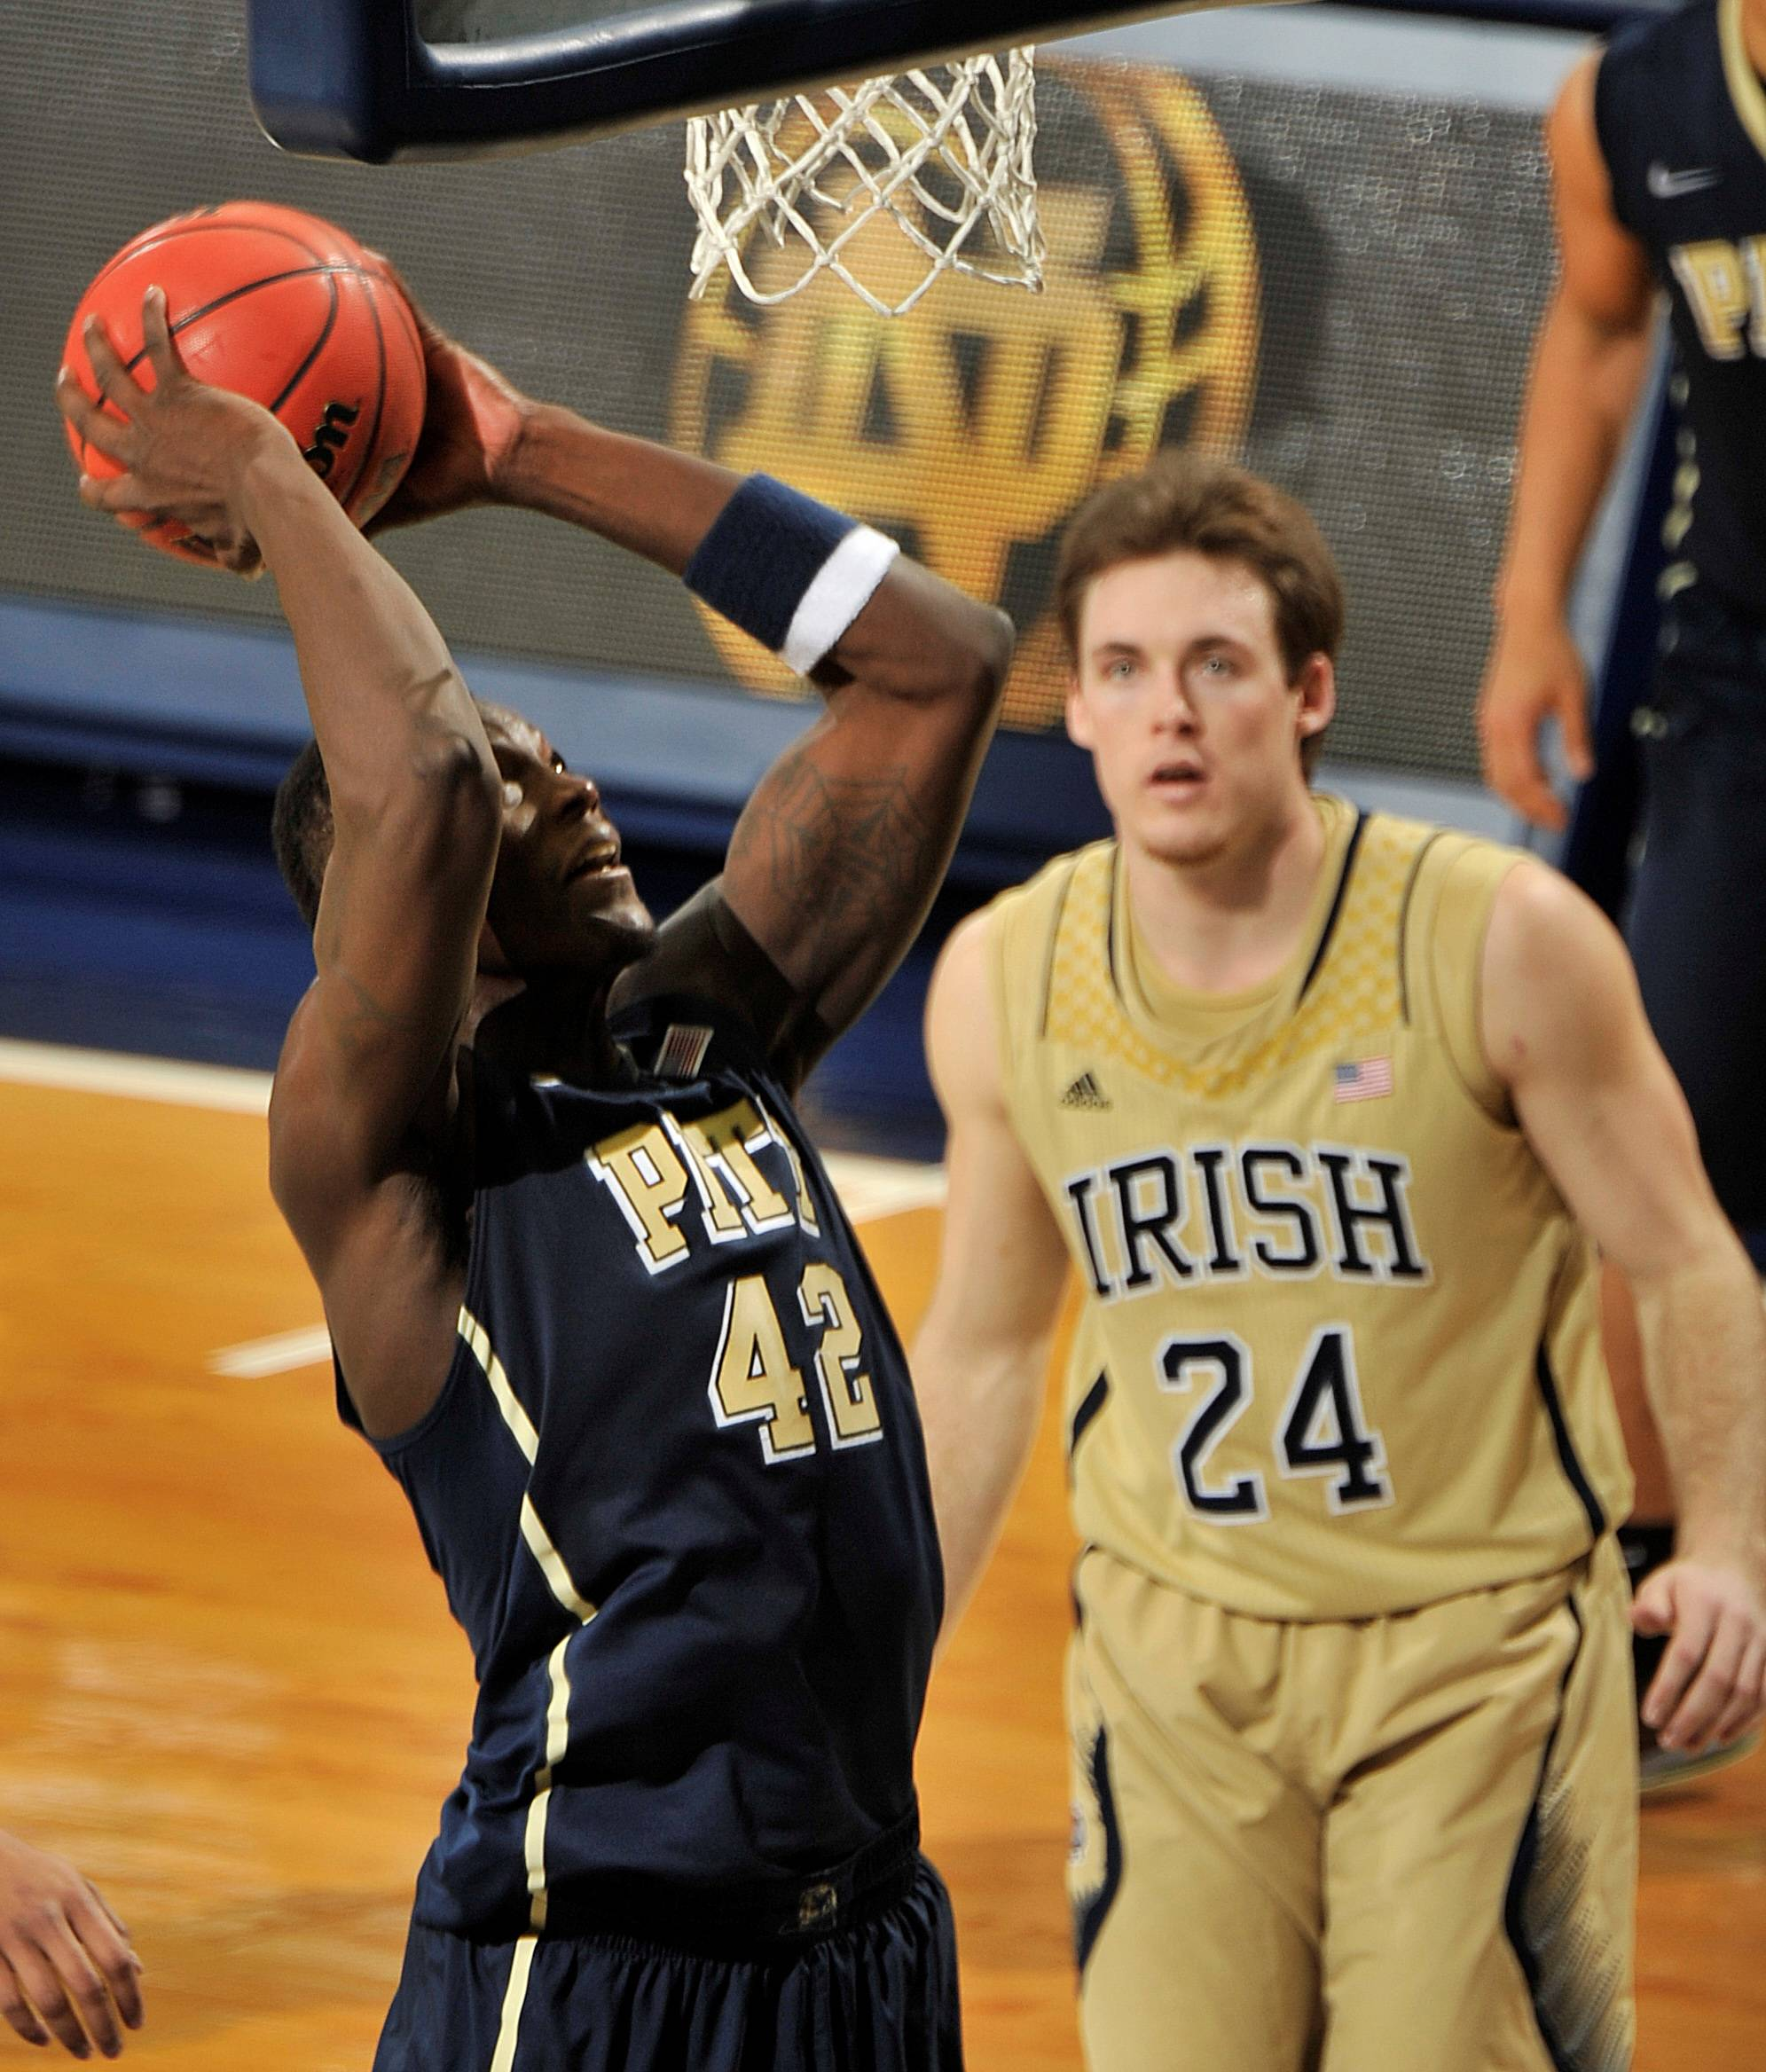 Pittsburgh forward Talib Zanna puts up a shot as Notre Dame guard Pat Connaughton looks on in the second half of an college basketball game Saturday, March 1, 2014 in South Bend, Ind. Pittsburgh won 85-81 in overtime with Zanna scoring 17 points.